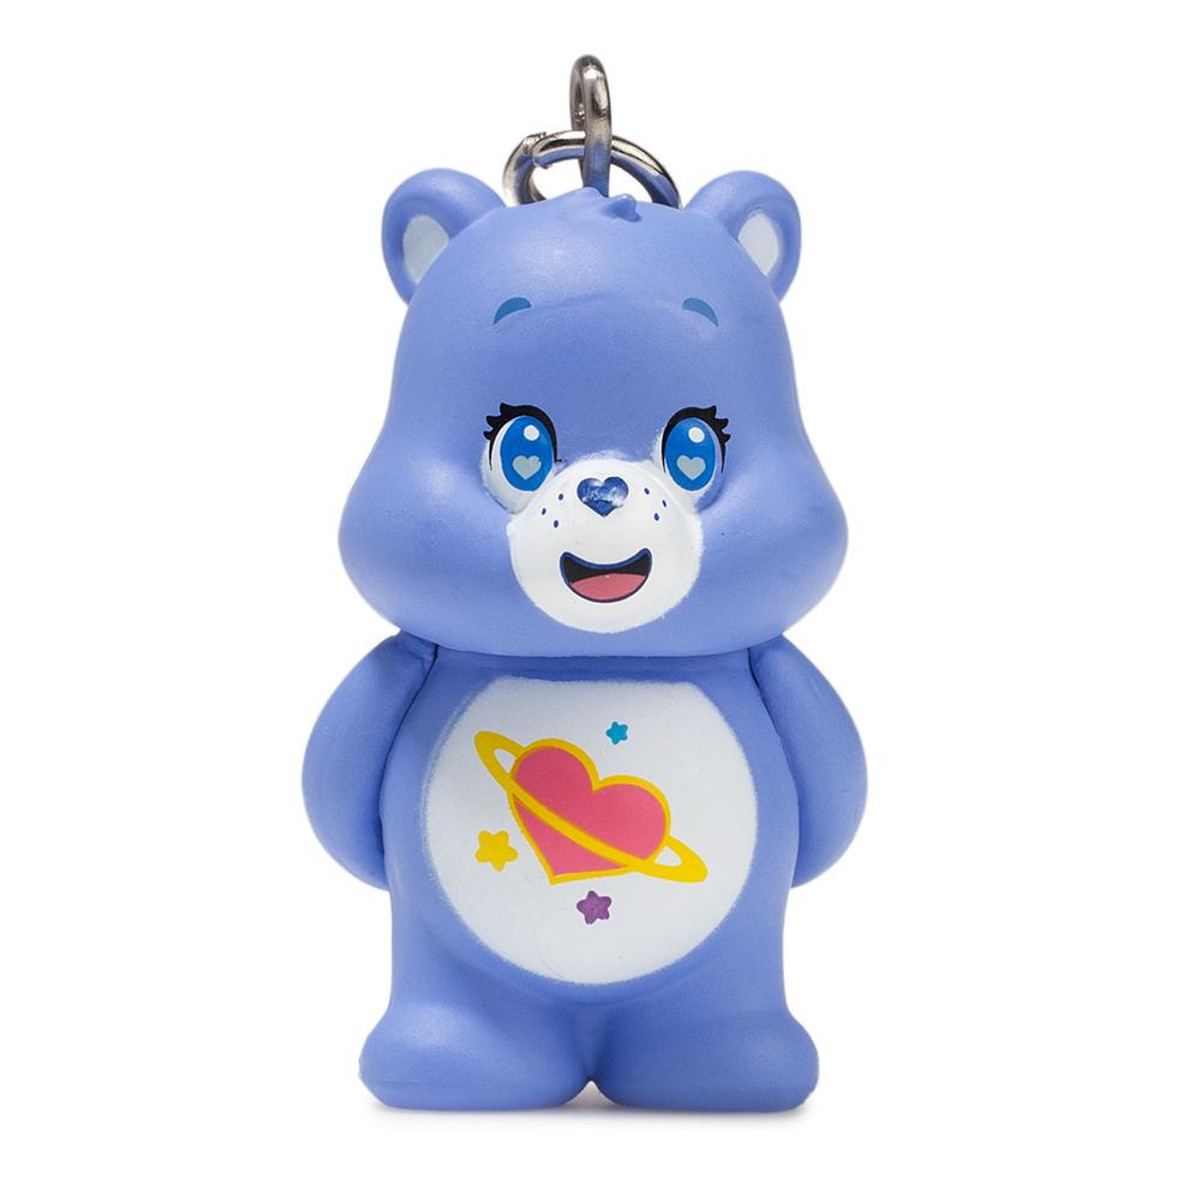 Care Bears Keychains Blind Box Myplasticheart